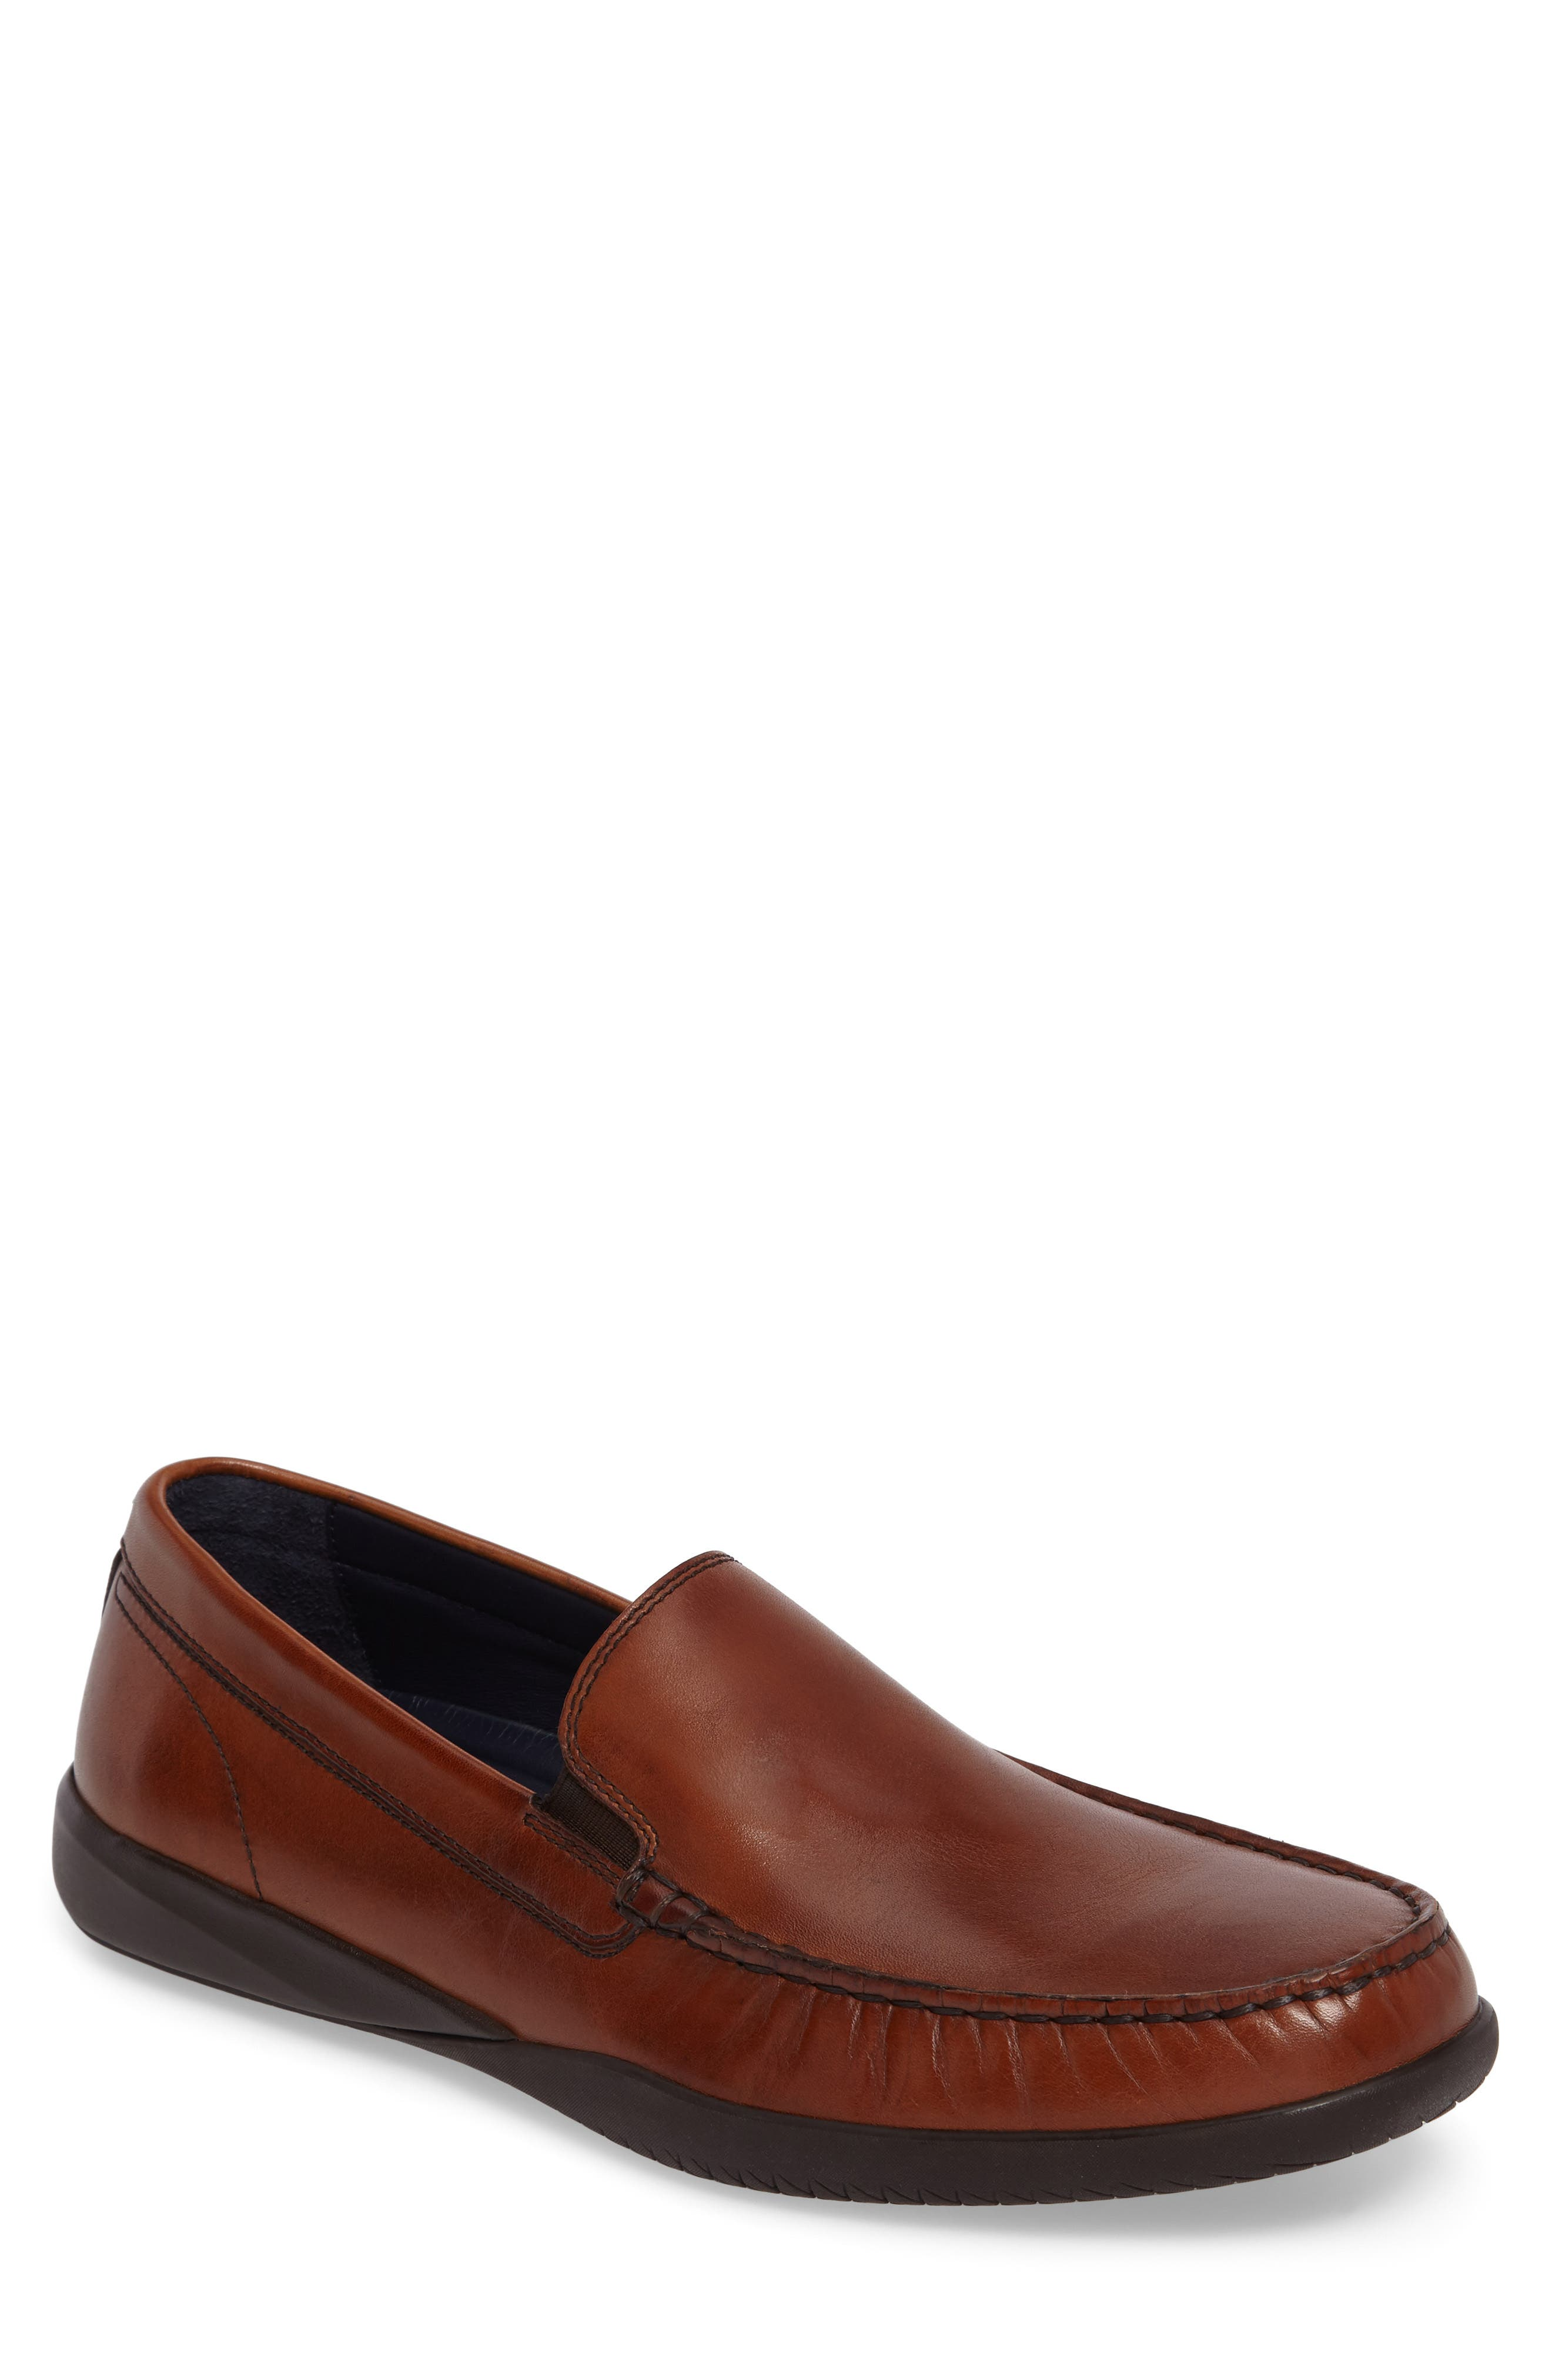 Lovell 2 Loafer,                         Main,                         color, British Tan